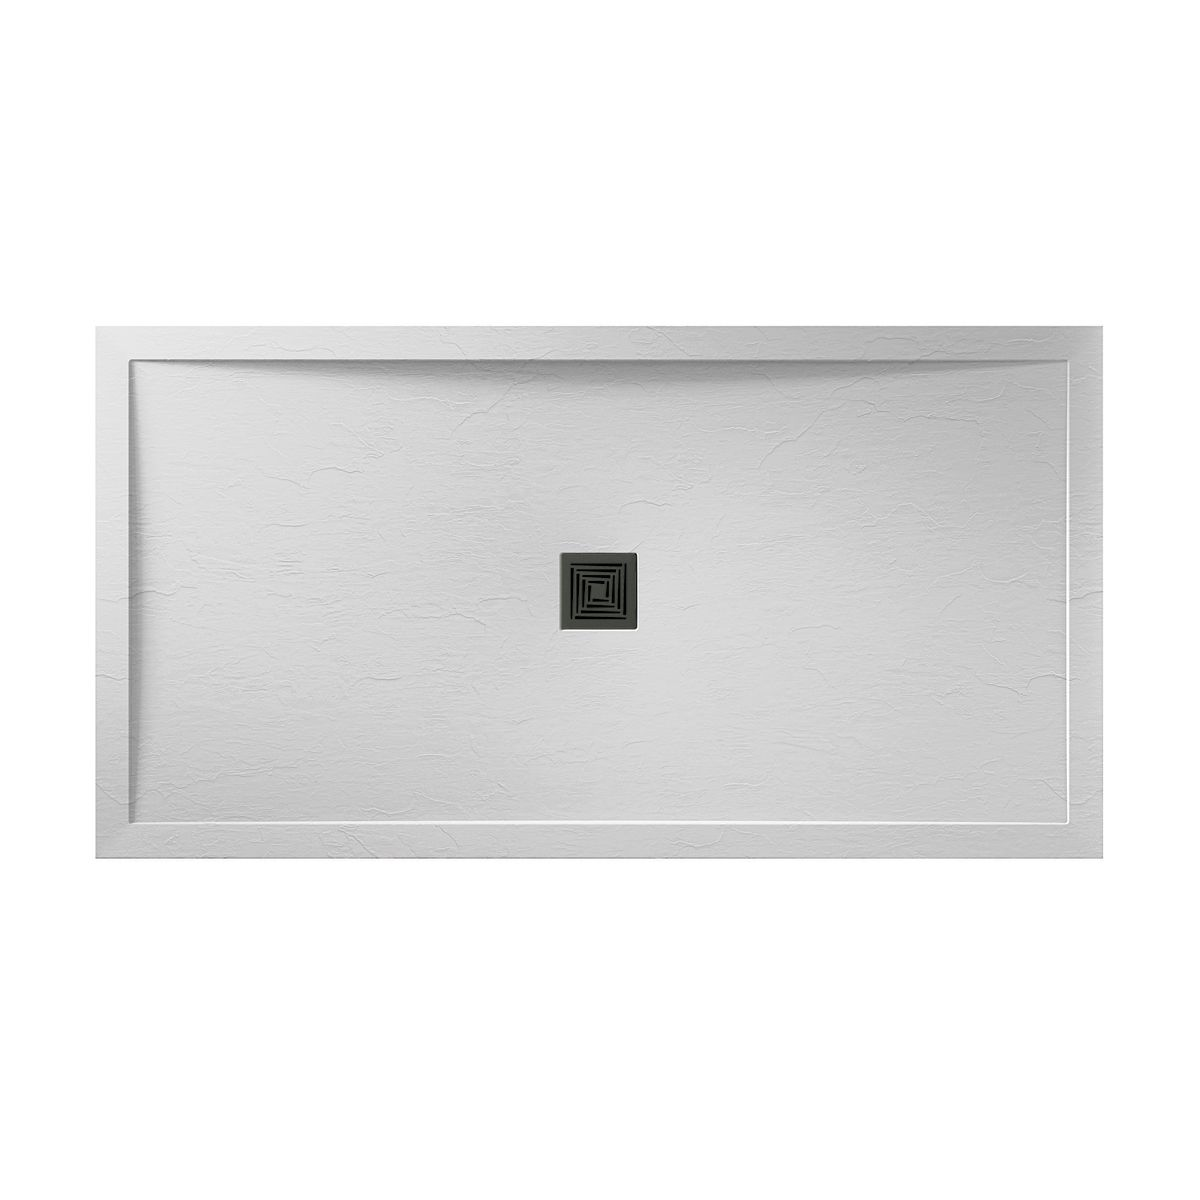 Aquadart White Slate Shower Tray 1500 x 800